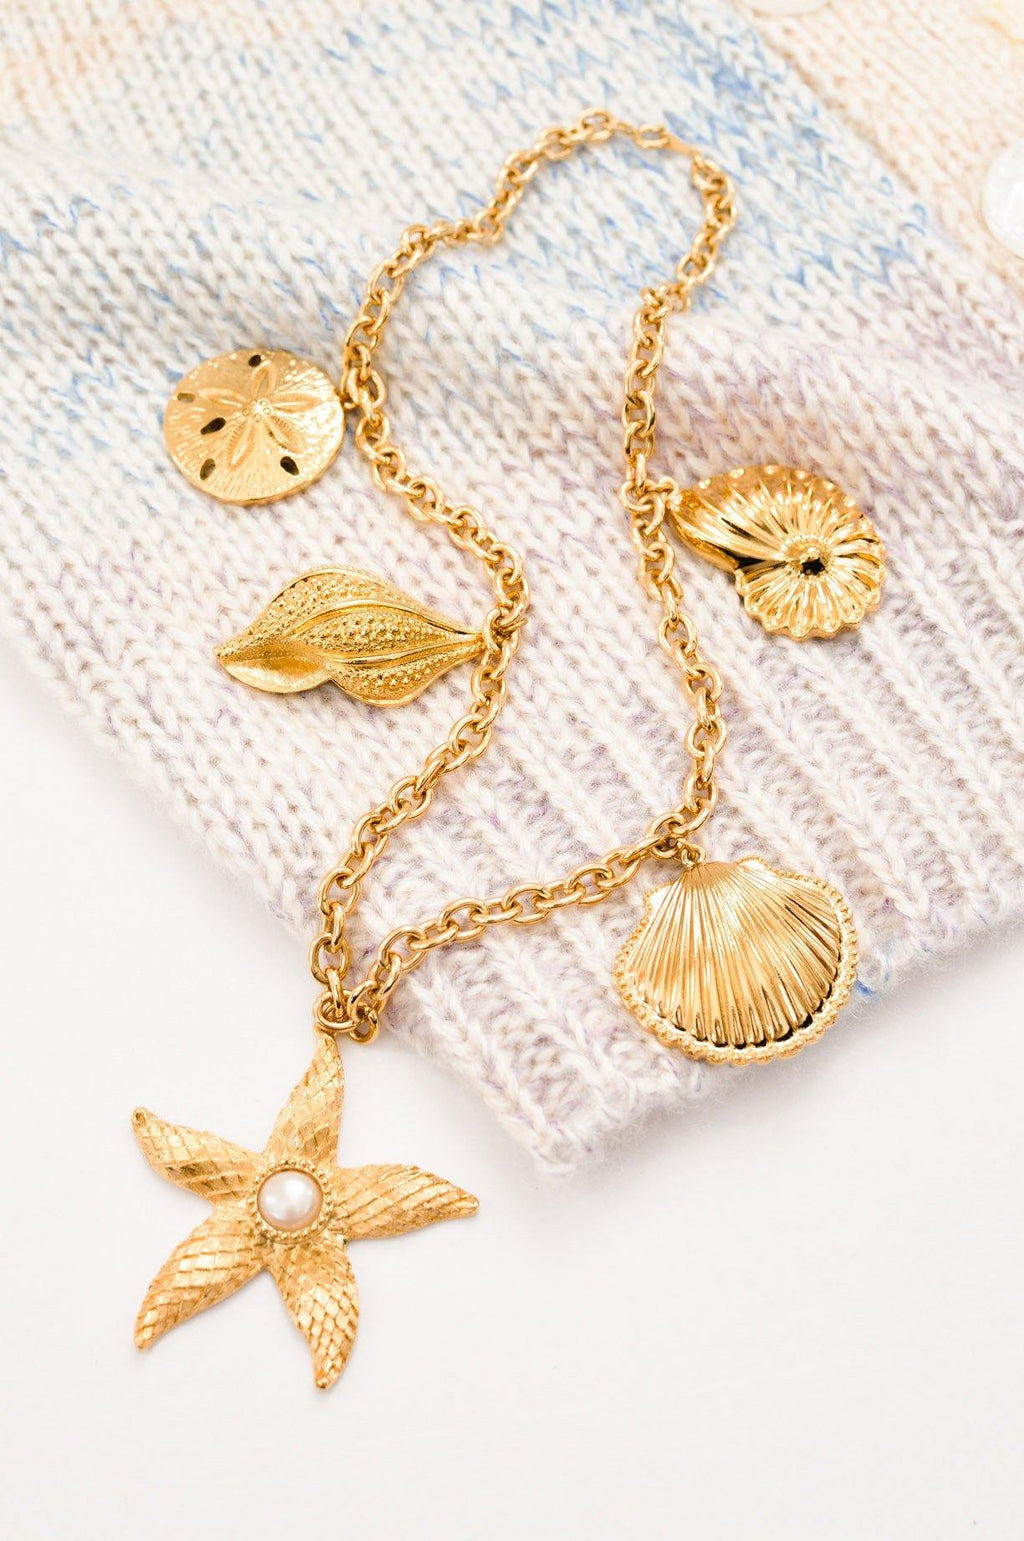 Kenneth Jay Lane Statement Seaside Necklace